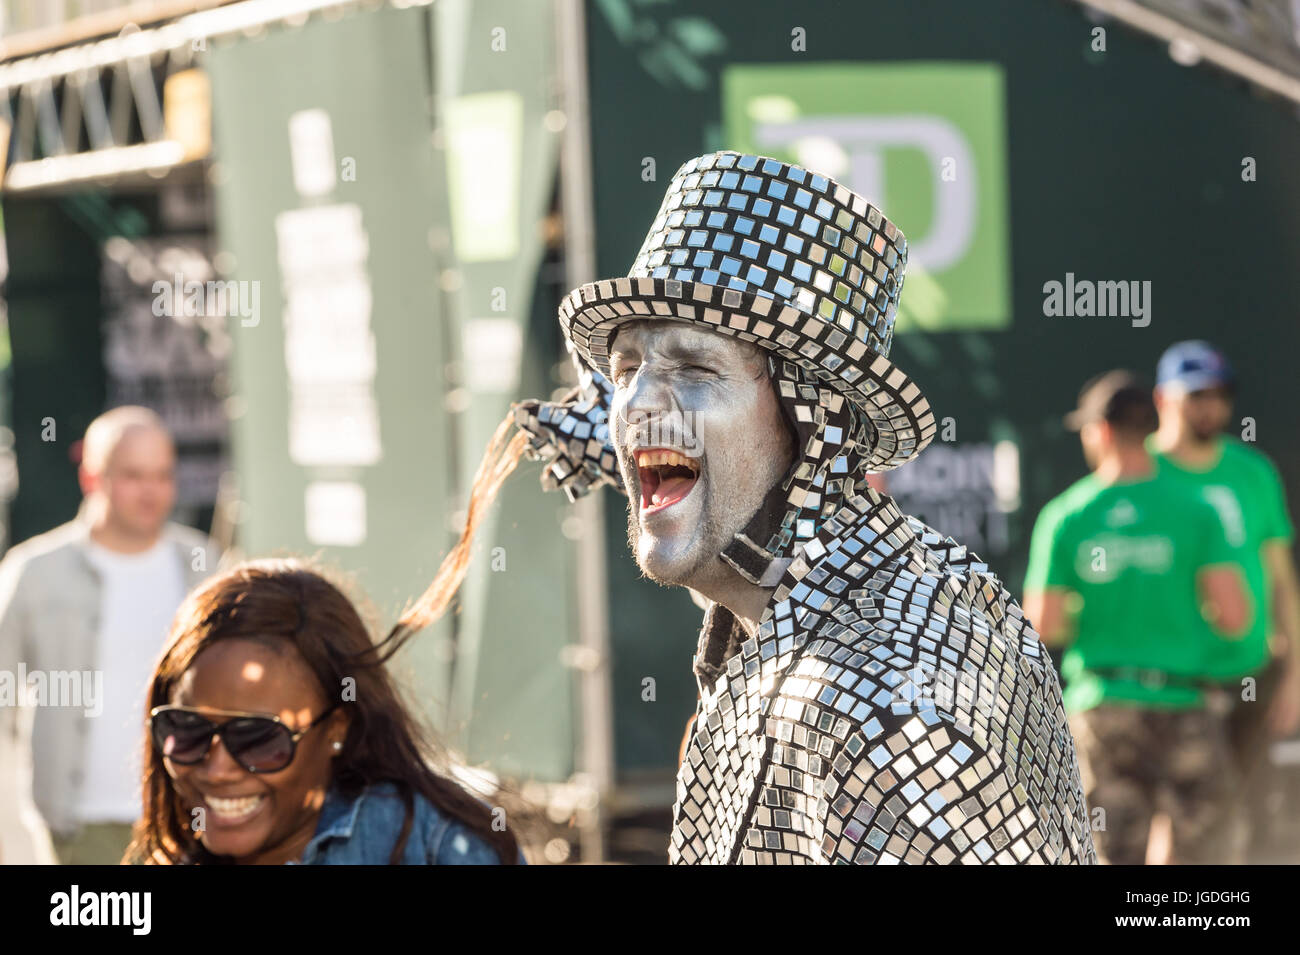 Montreal, 3 July 2017: Mime artist wearing a costume made of small mirrors having fun with a young woman - Stock Image